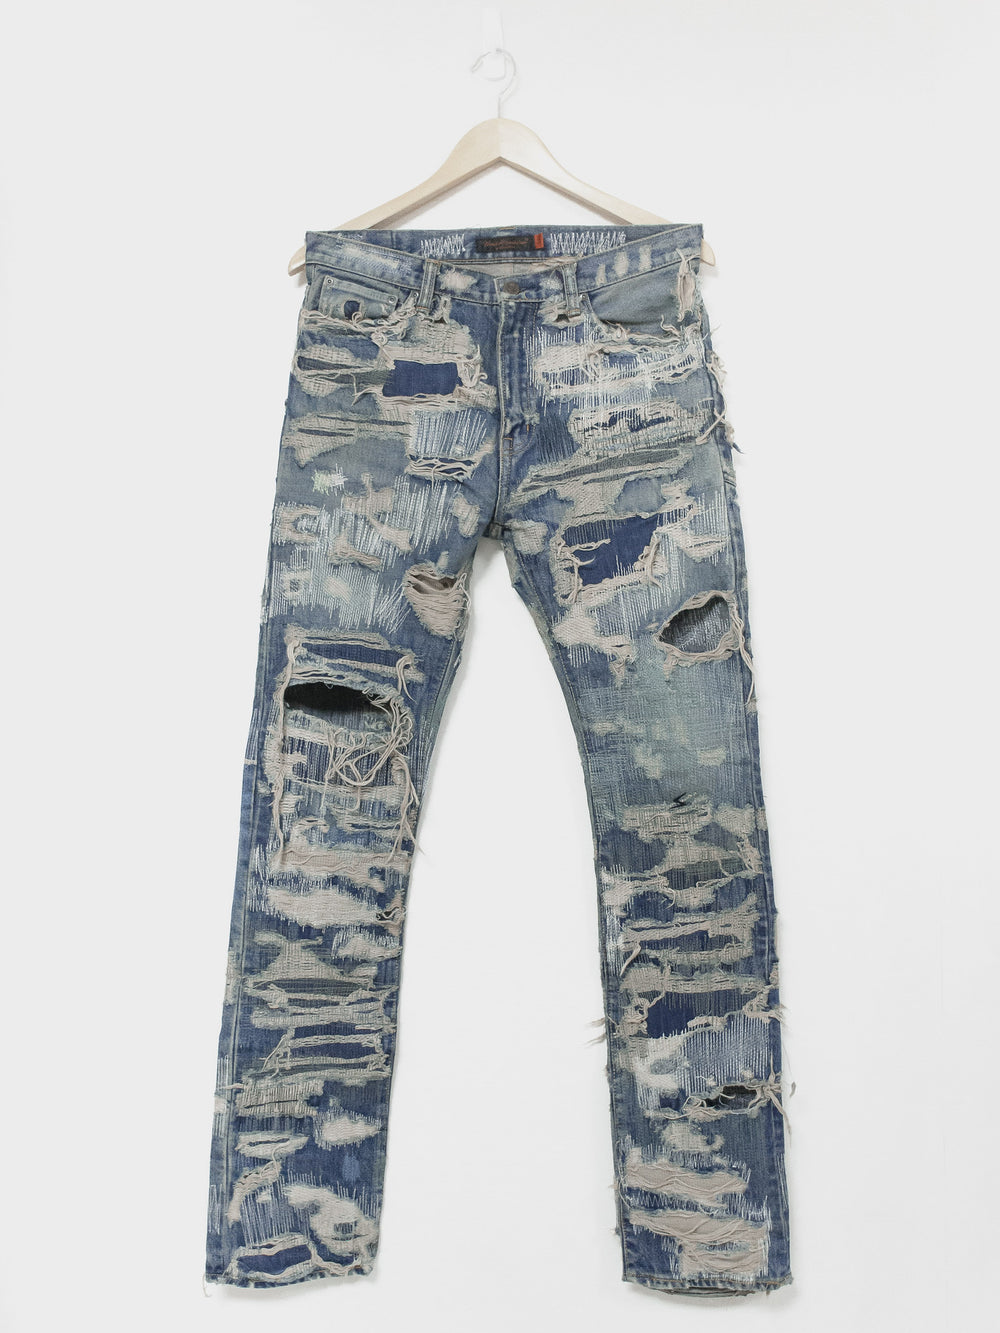 Undercover AW05 Arts & Crafts 85 Denim